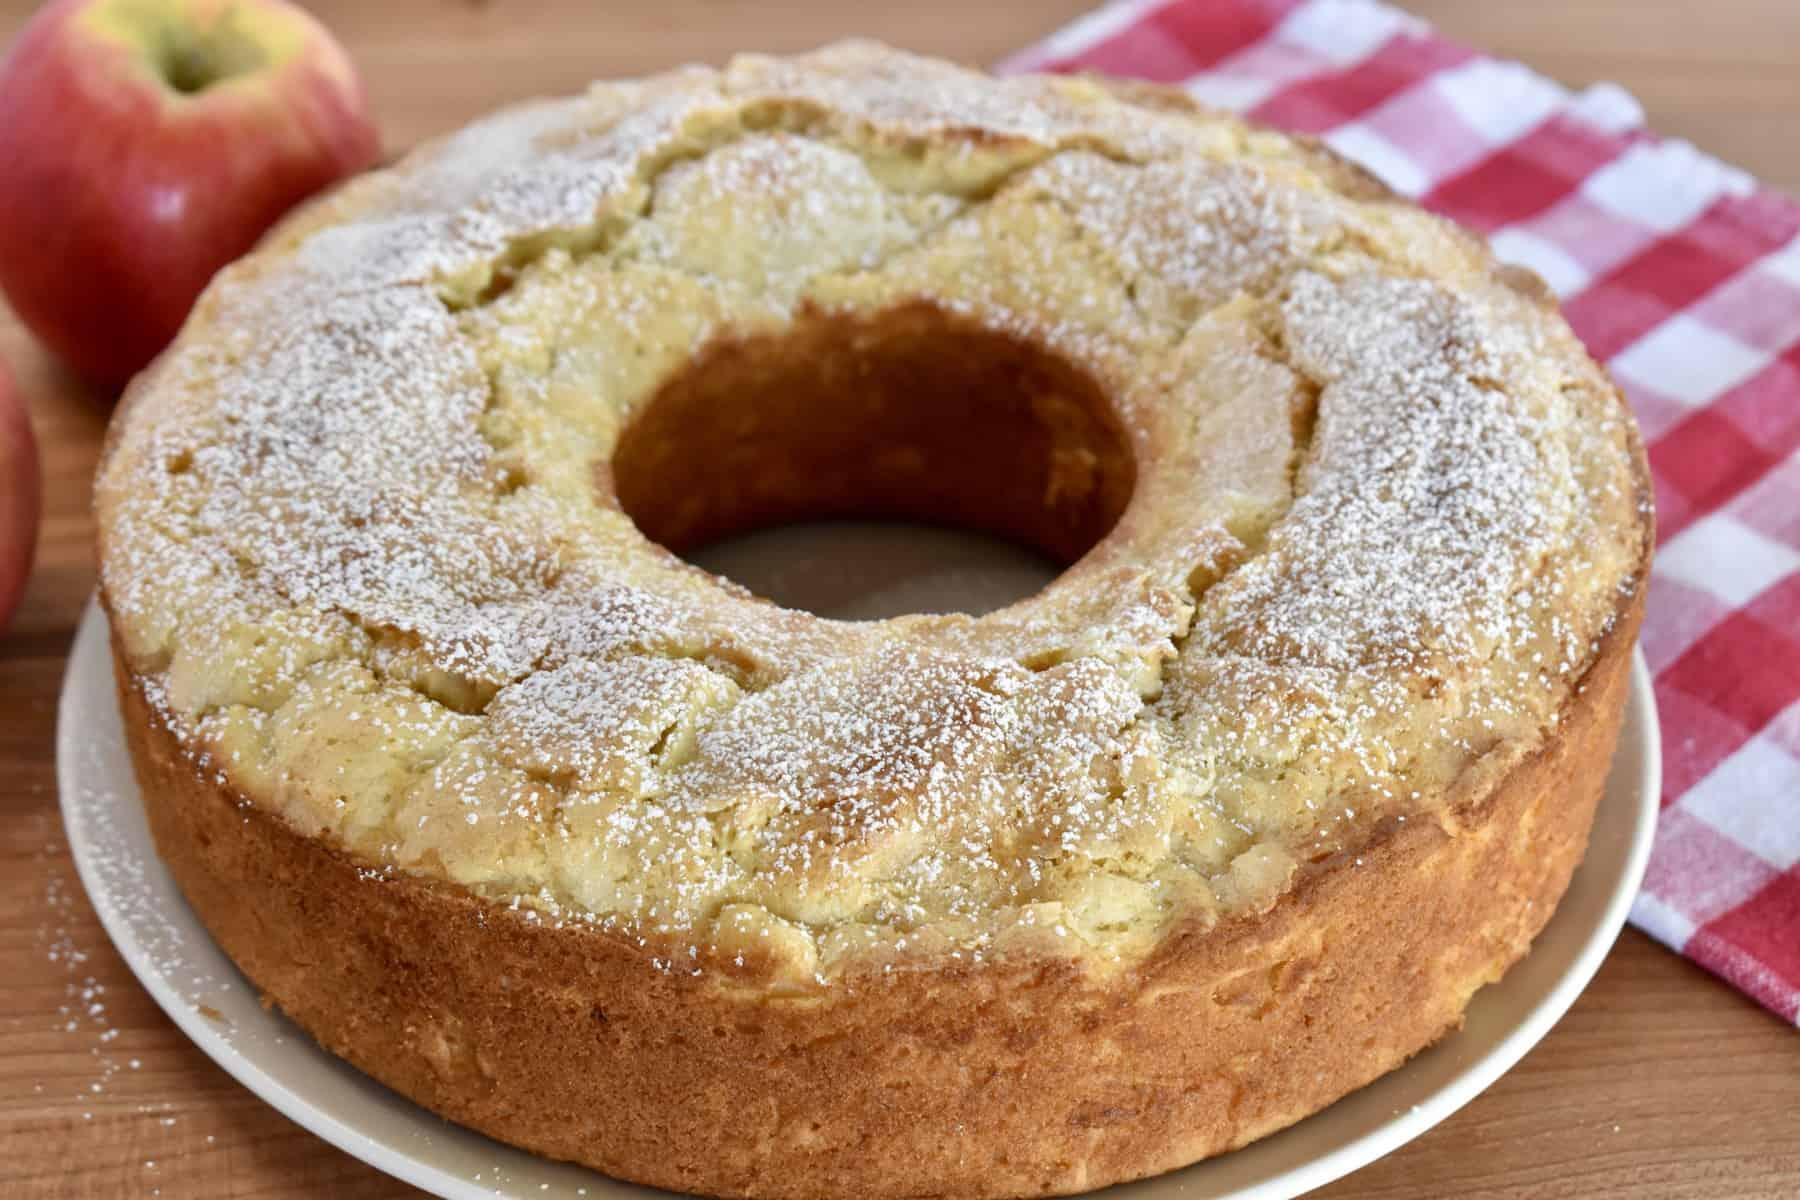 Italian Apple Cake on a wood cutting board with checkered cloth in the background.